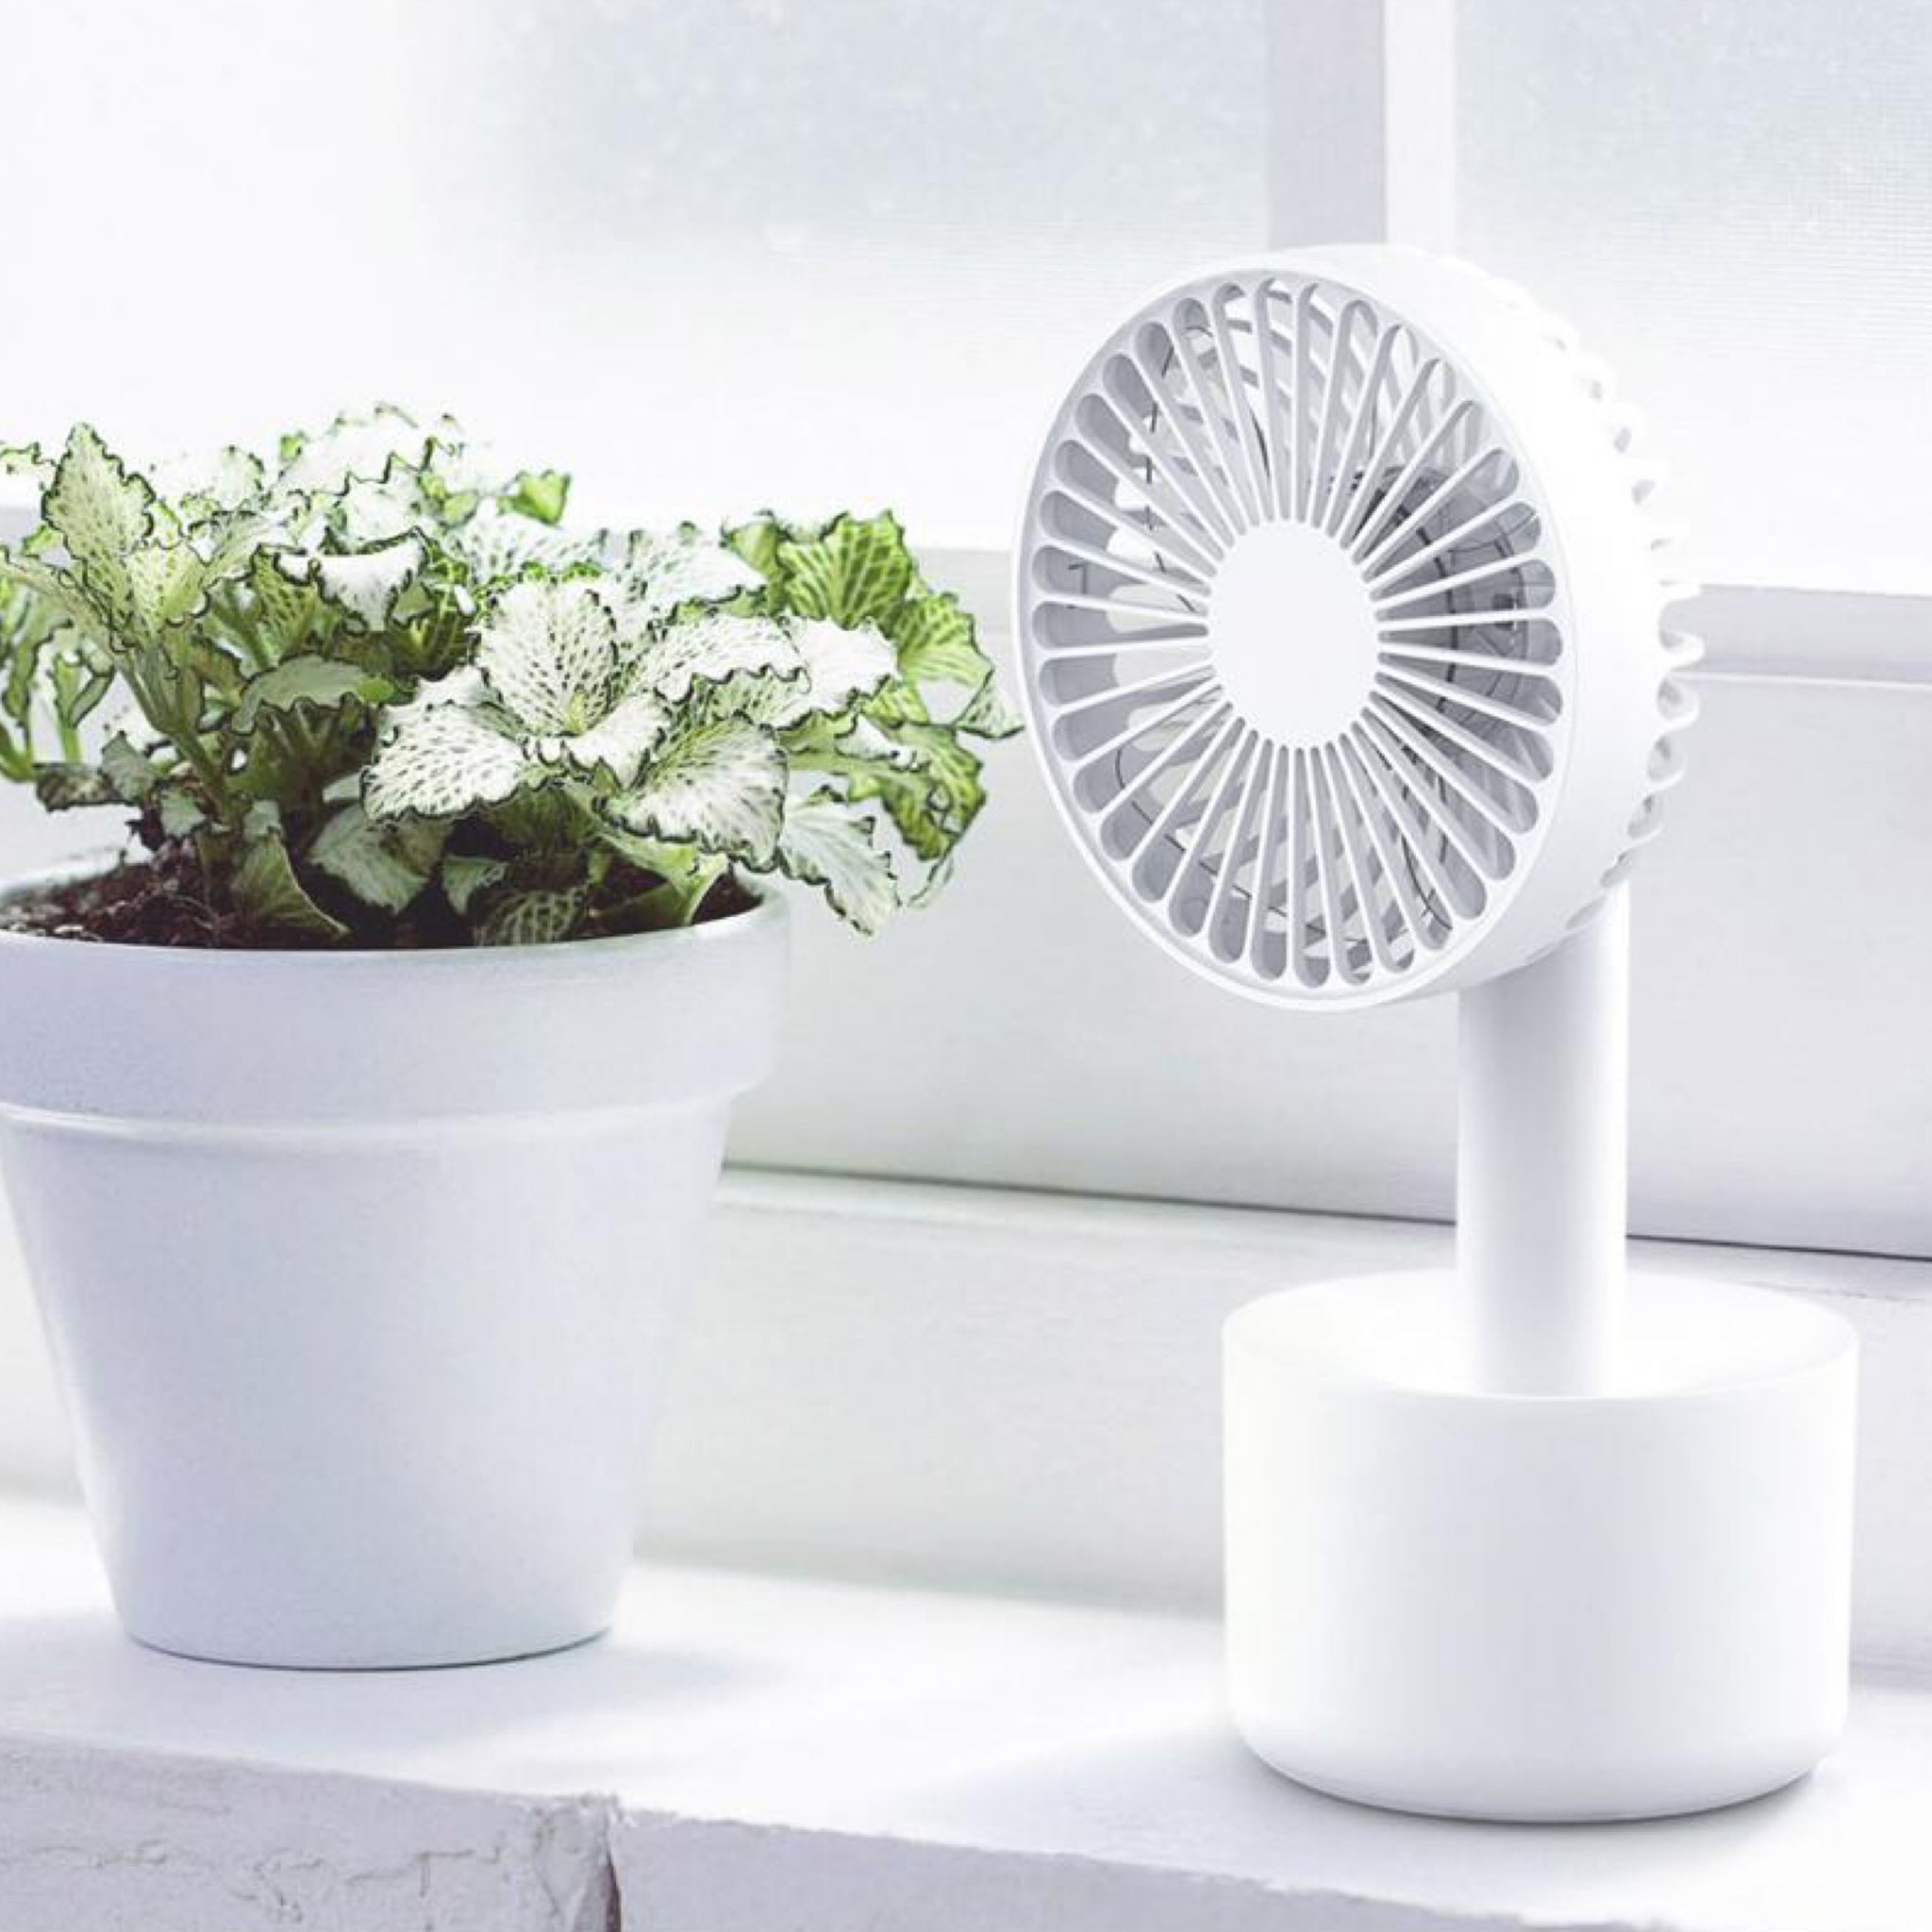 Detachable Portable White Handheld Mini Fan Degree Rotation Ultra Quiet Home Office Outdoor Desk USB Electric Charging Fans Trend